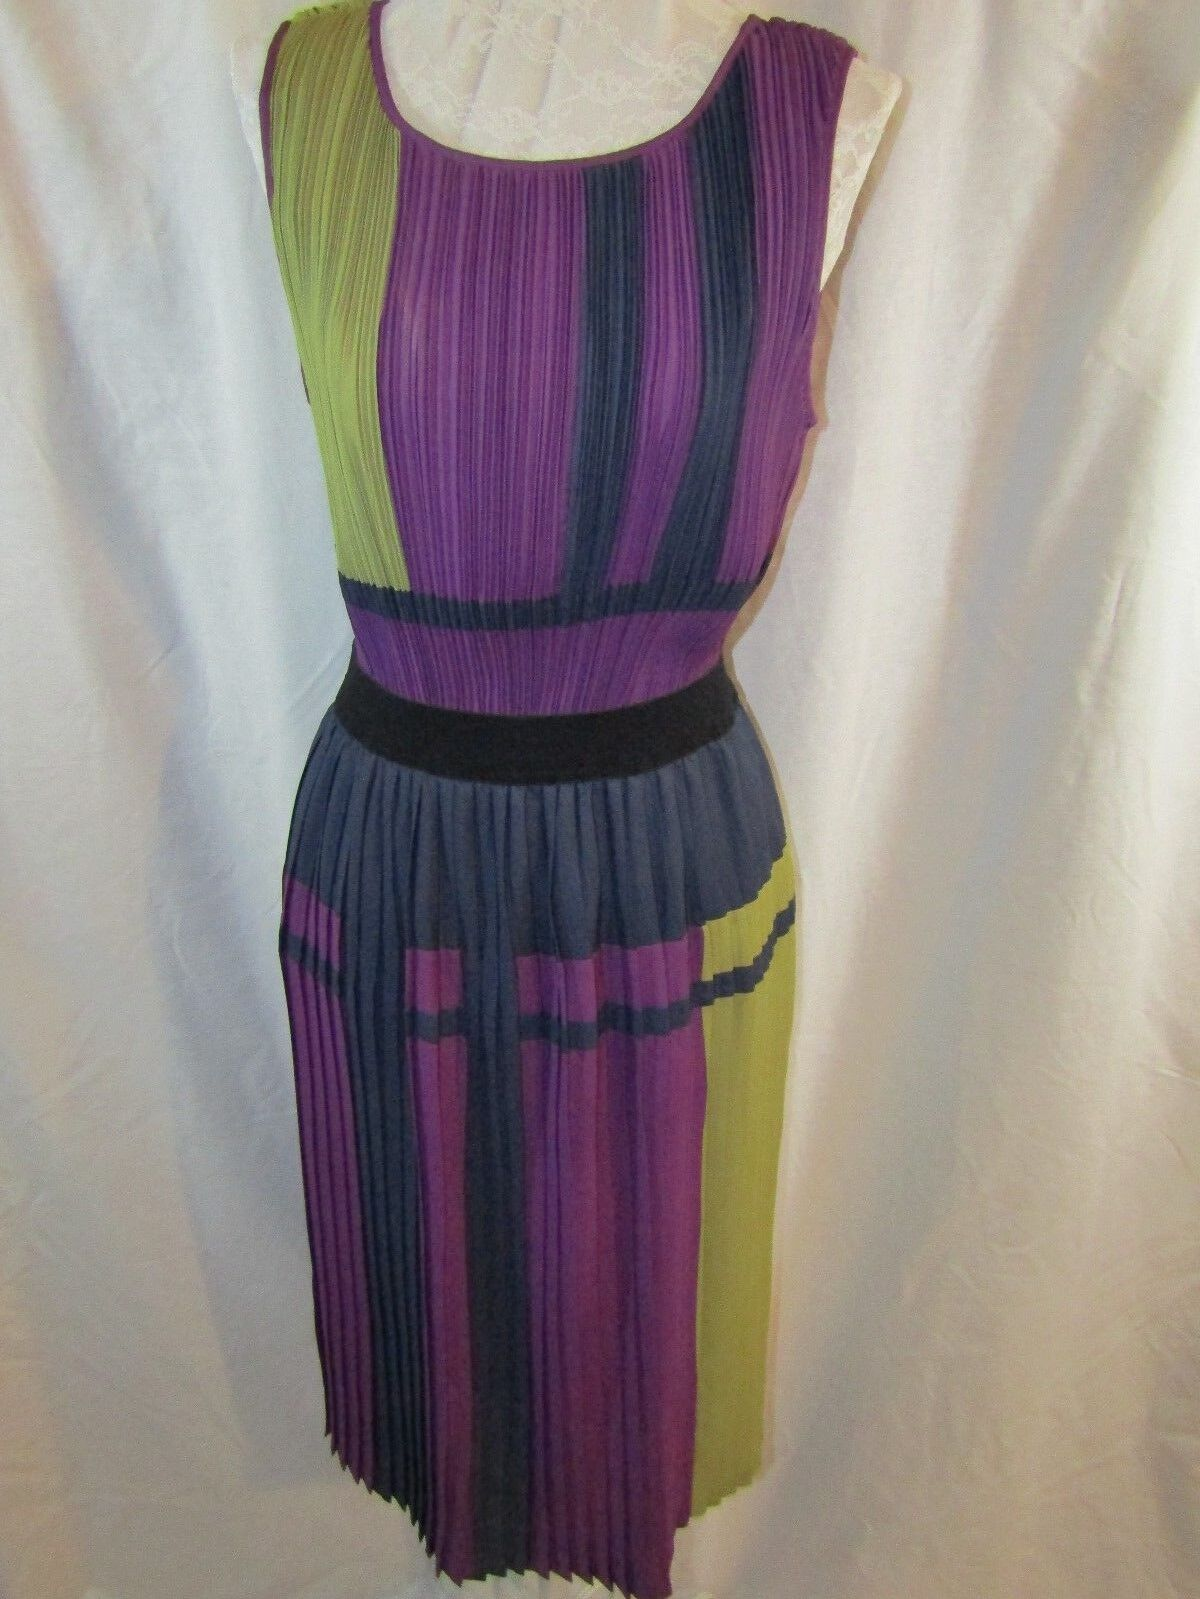 BCBG MAXAZRIA Woman's Multi-Farbe  Arleney  Dress Größe XXS NWT